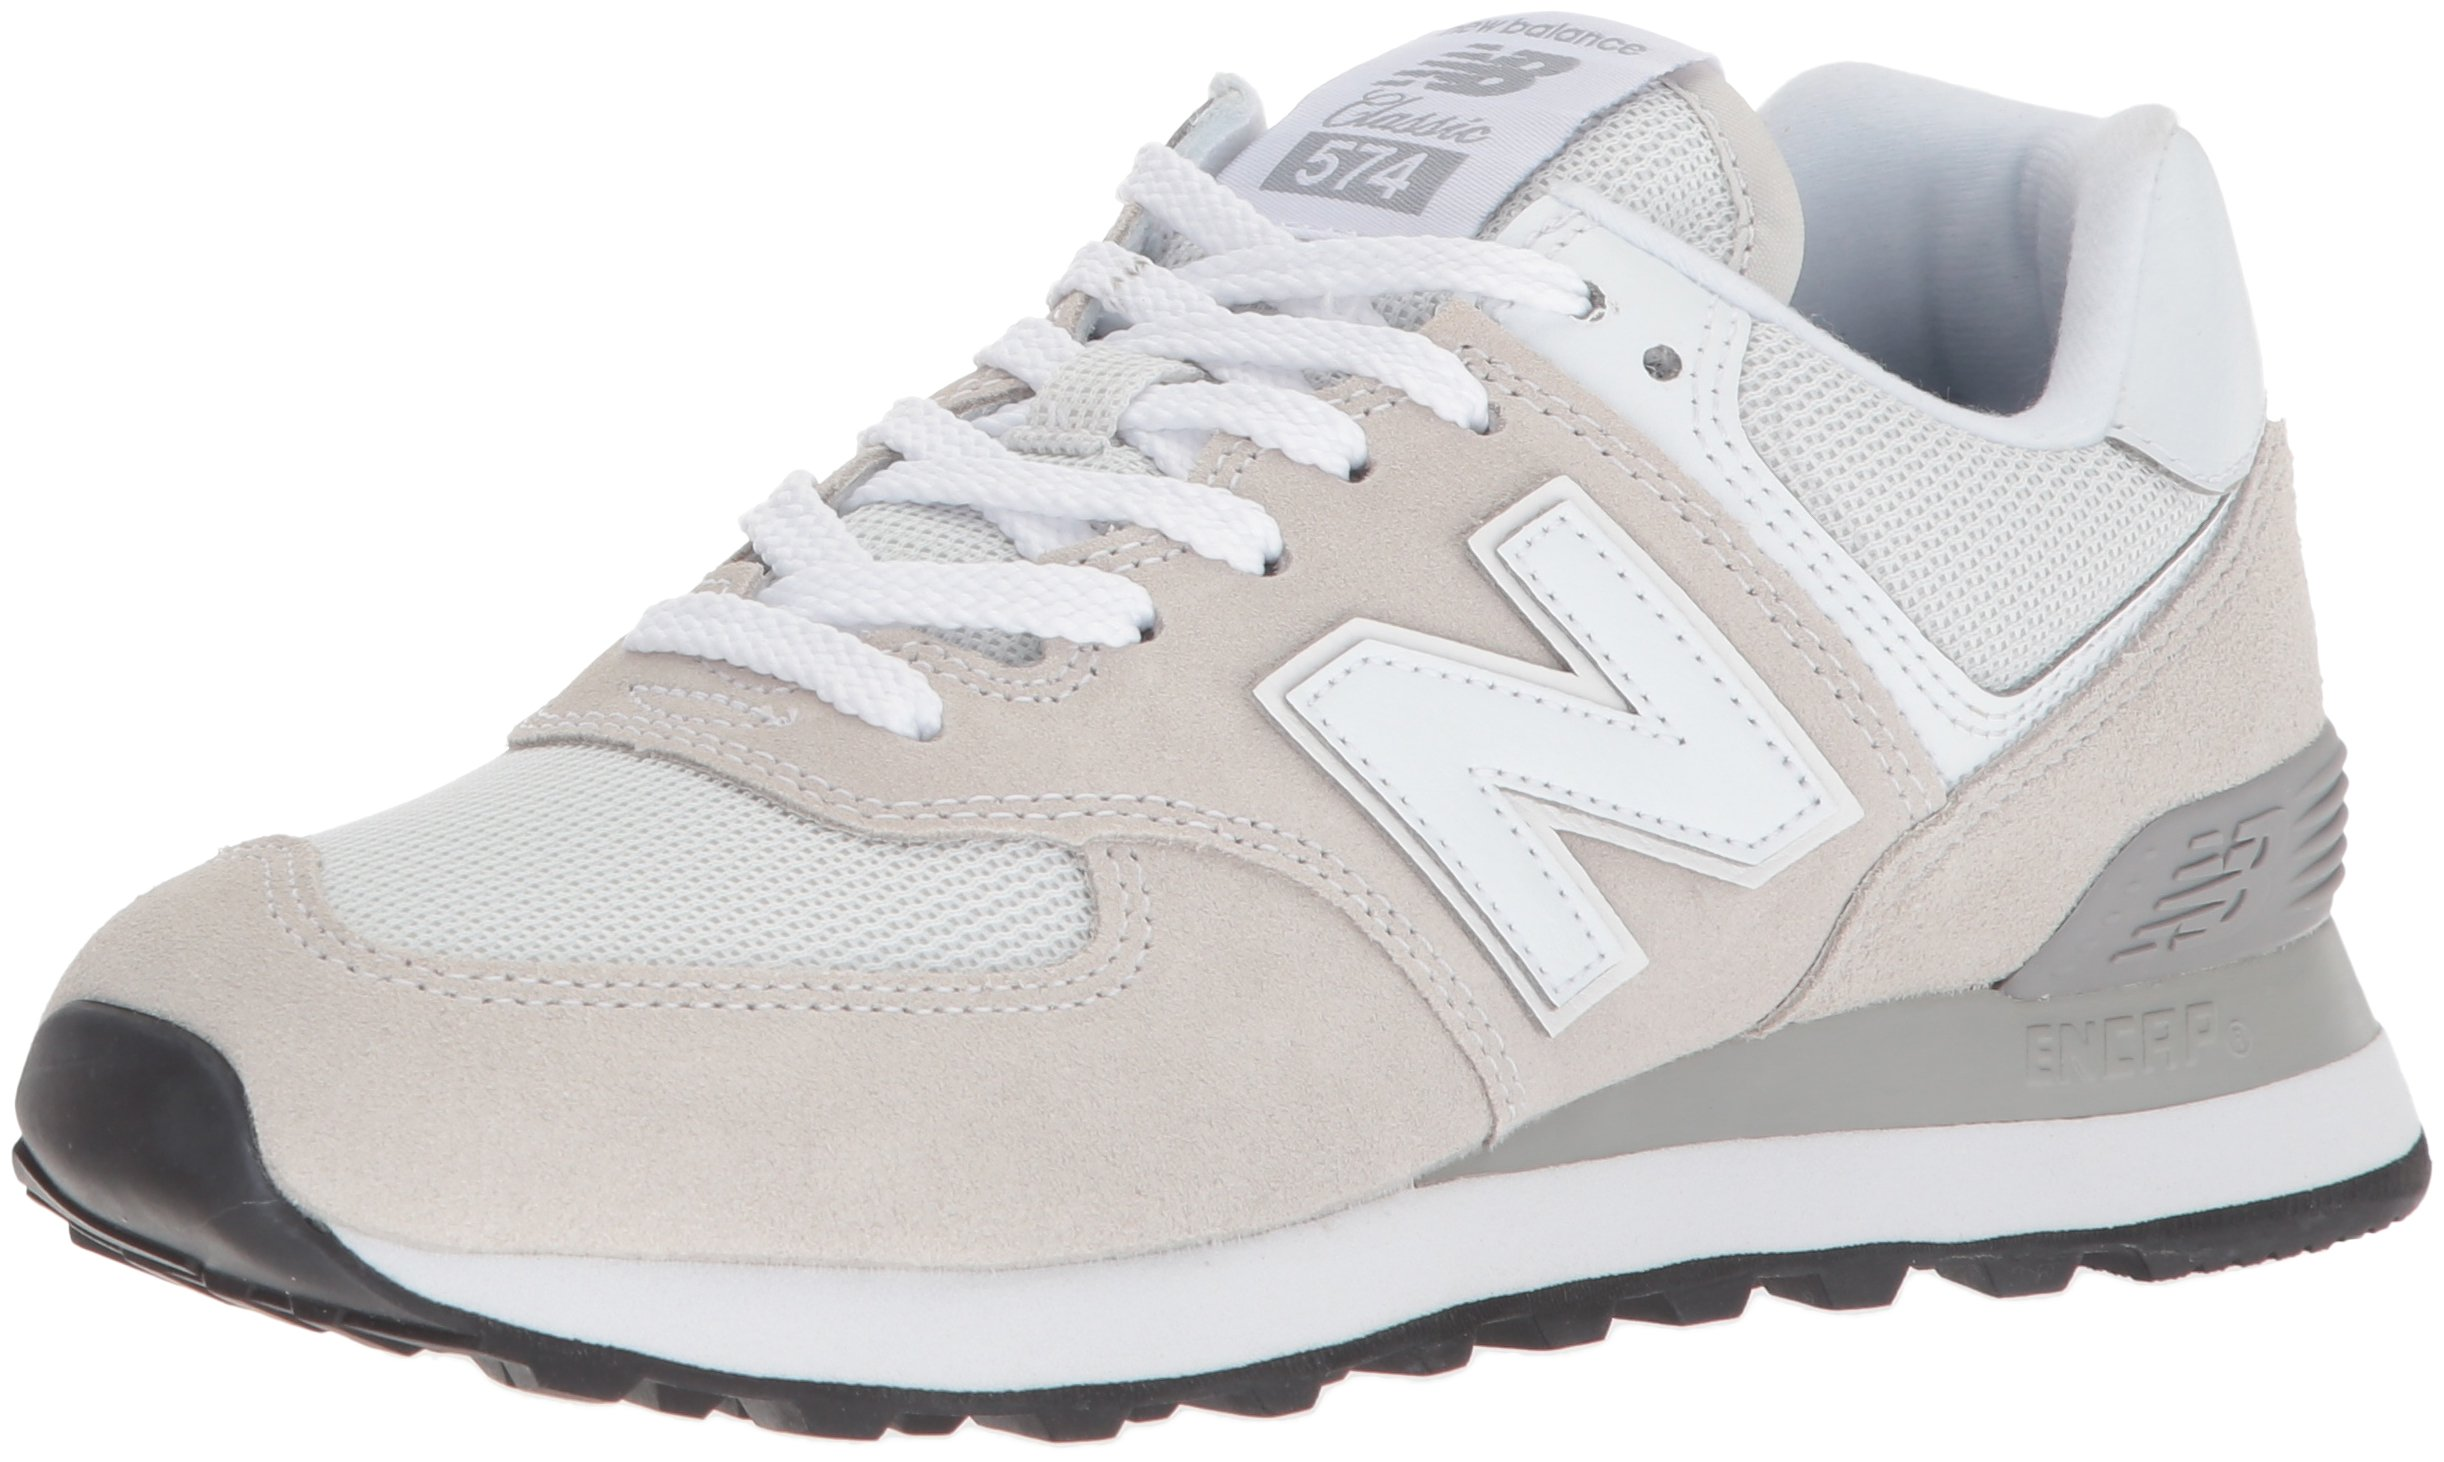 New Balance Women's Iconic 574 Sneaker, White, 6.5 B US